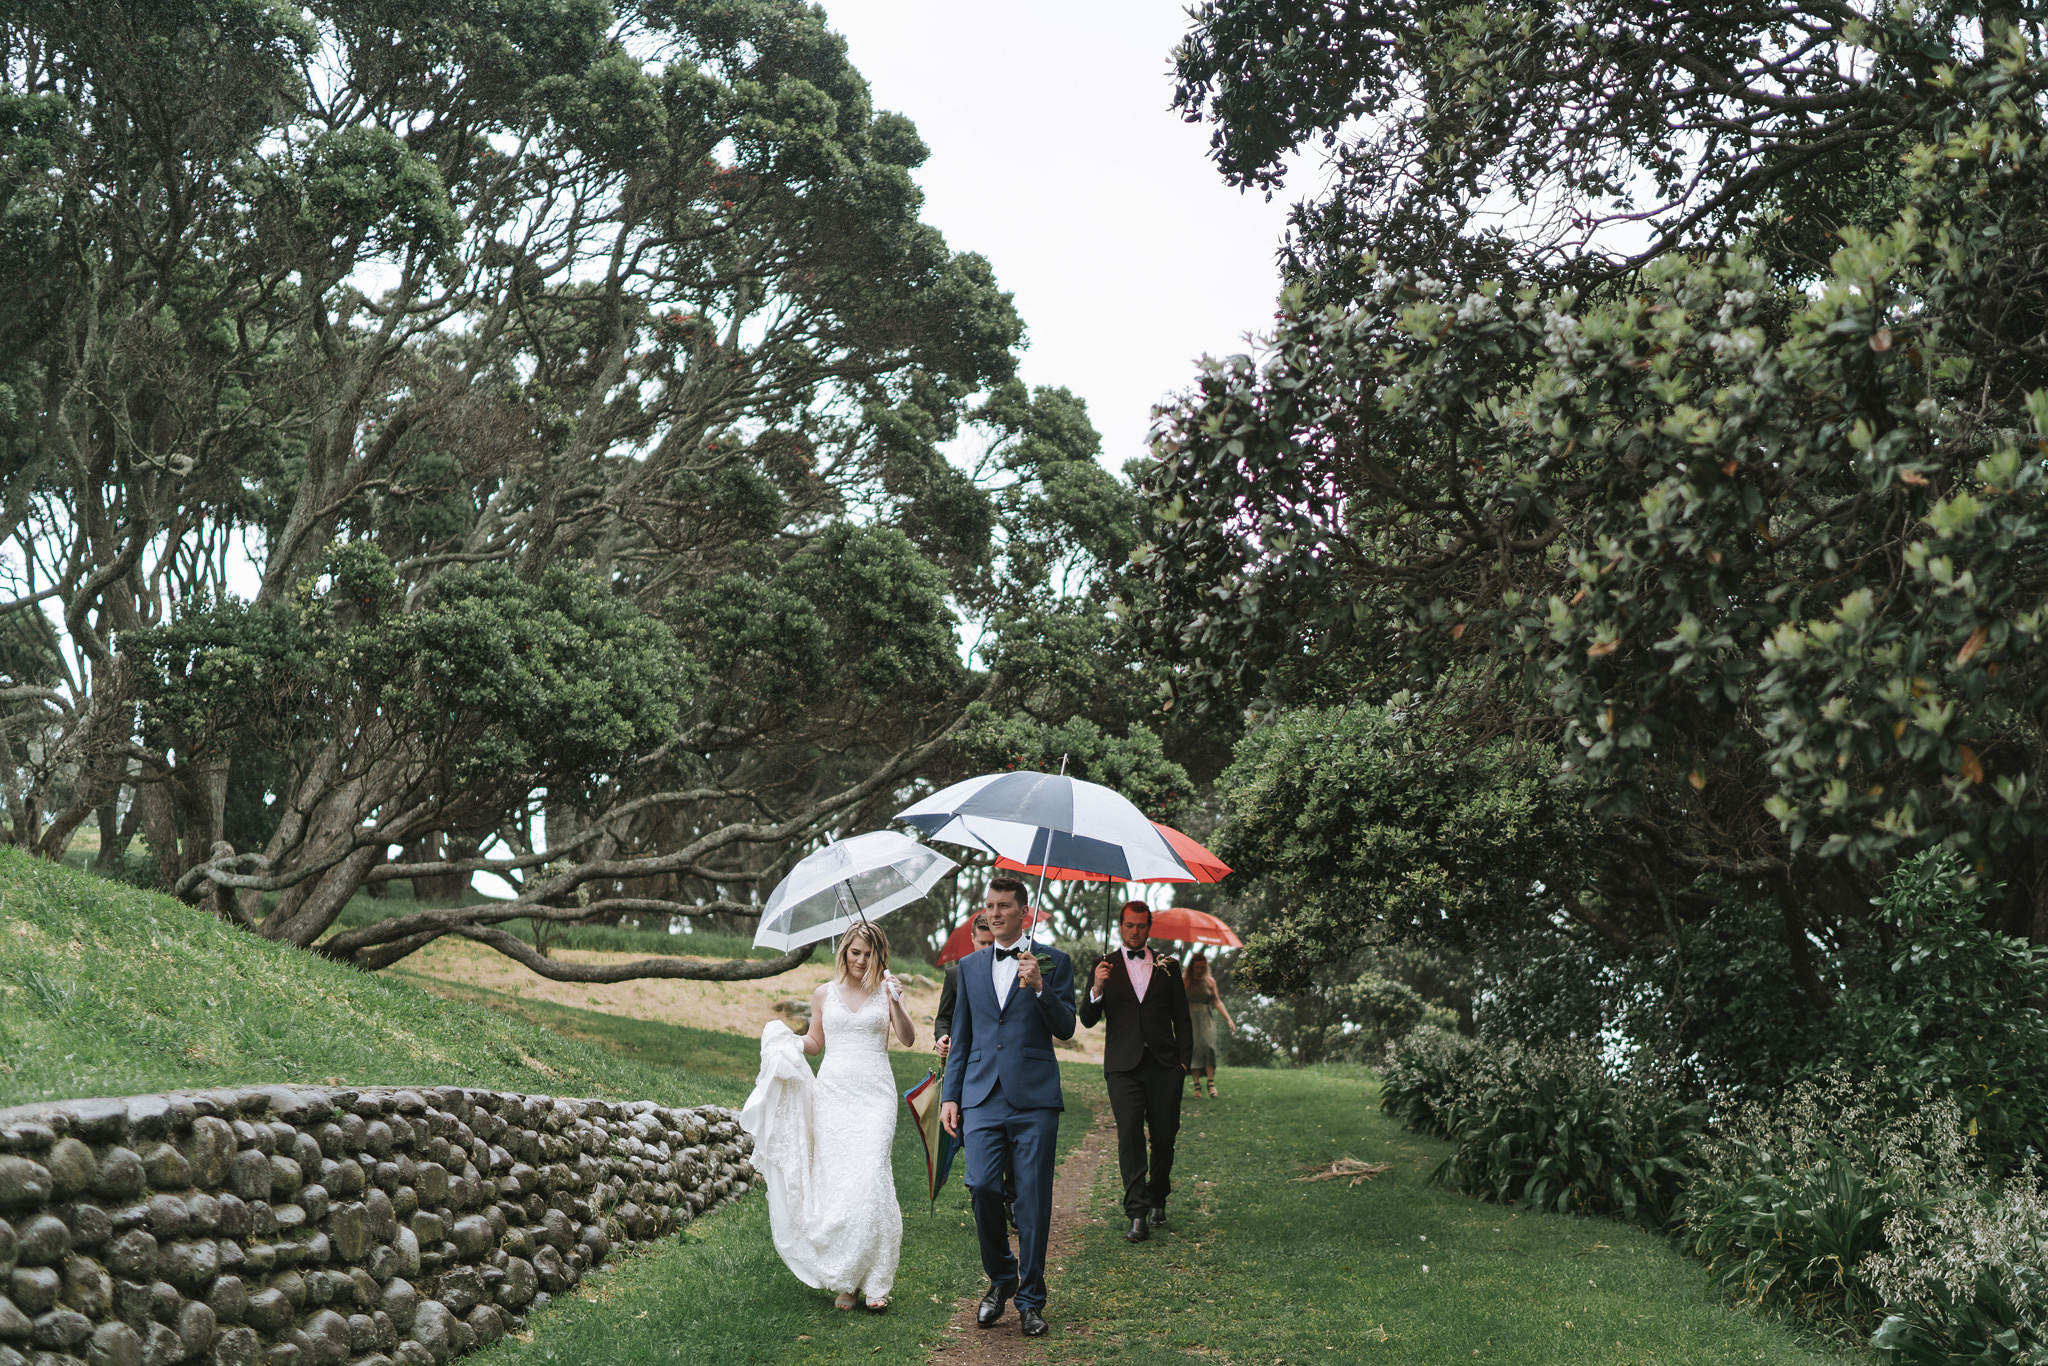 newfound-s-a-tauranga-new-zealand-wedding-photography-239